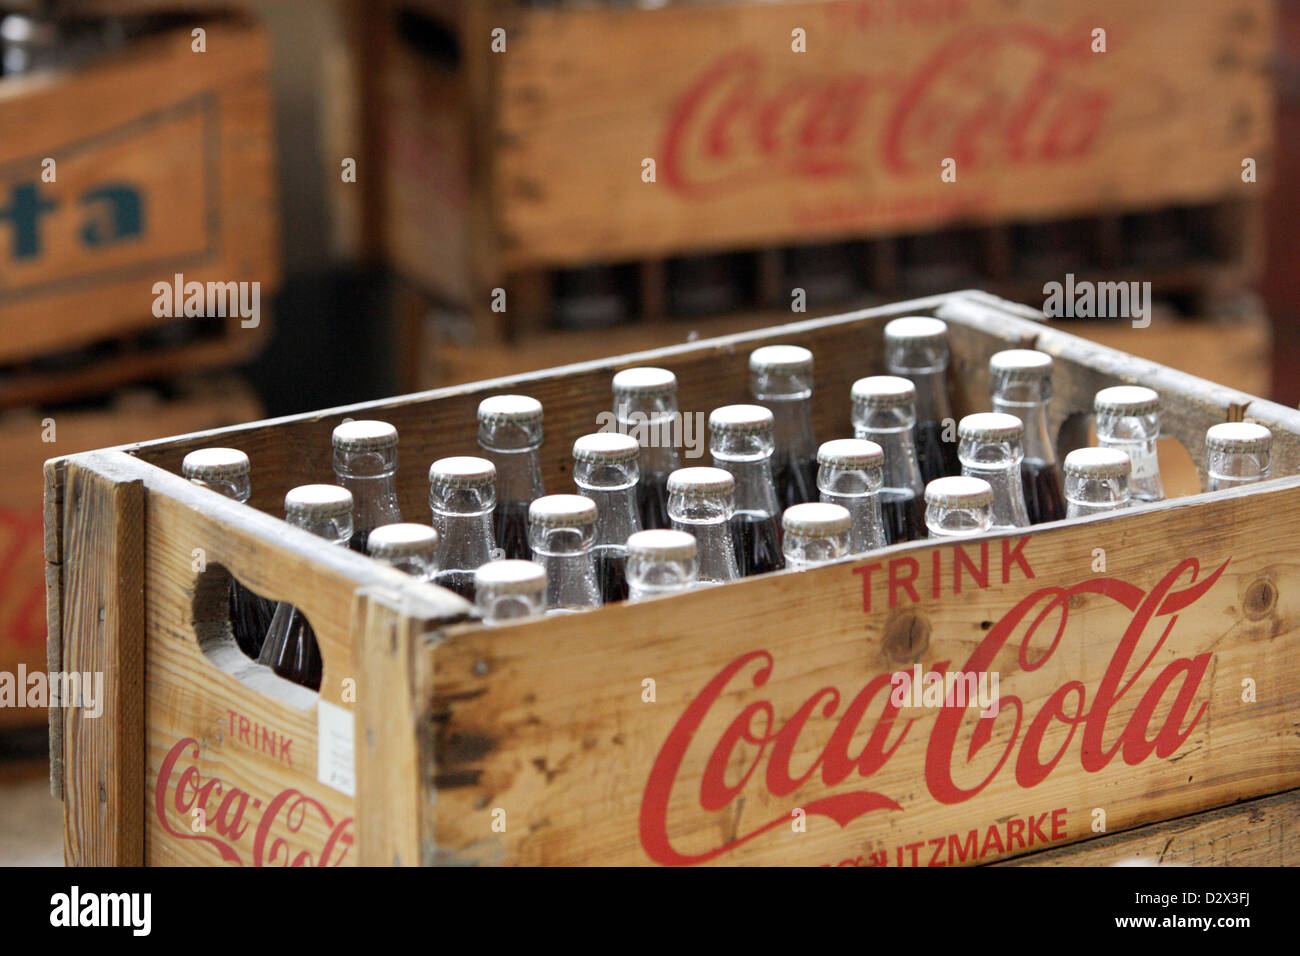 berlin deutschland alte coca cola kisten stockfoto bild 53433958 alamy. Black Bedroom Furniture Sets. Home Design Ideas